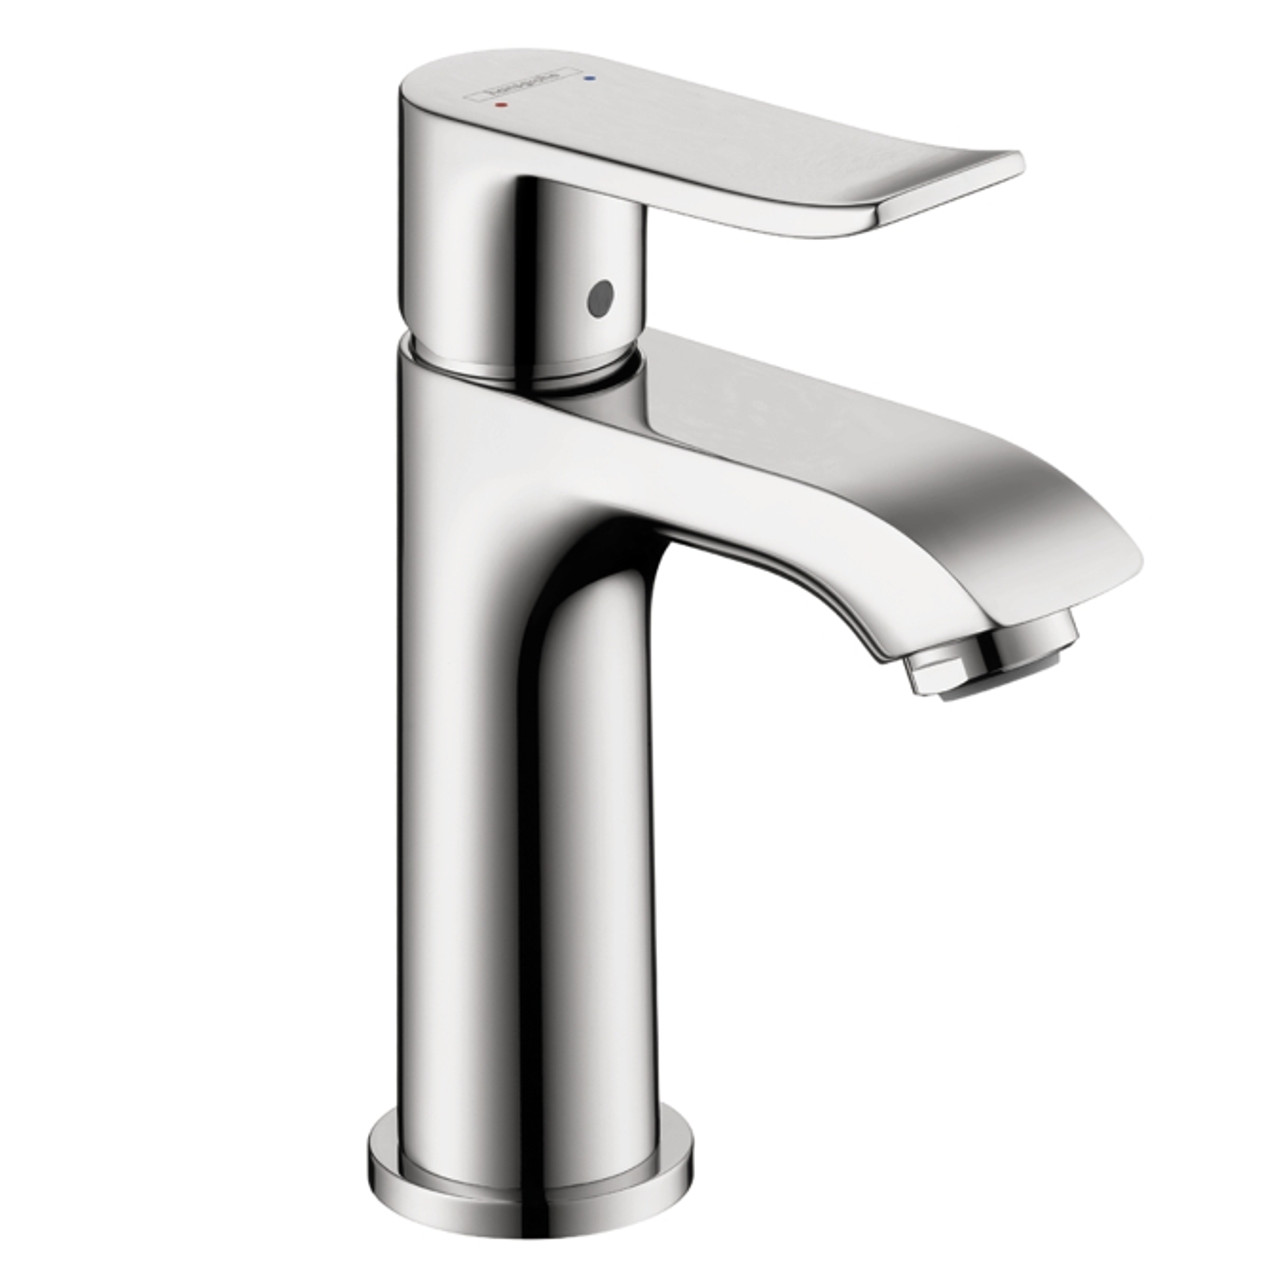 Hansgrohe Metris 100 Single Hole Faucet Chrome Finish York Taps